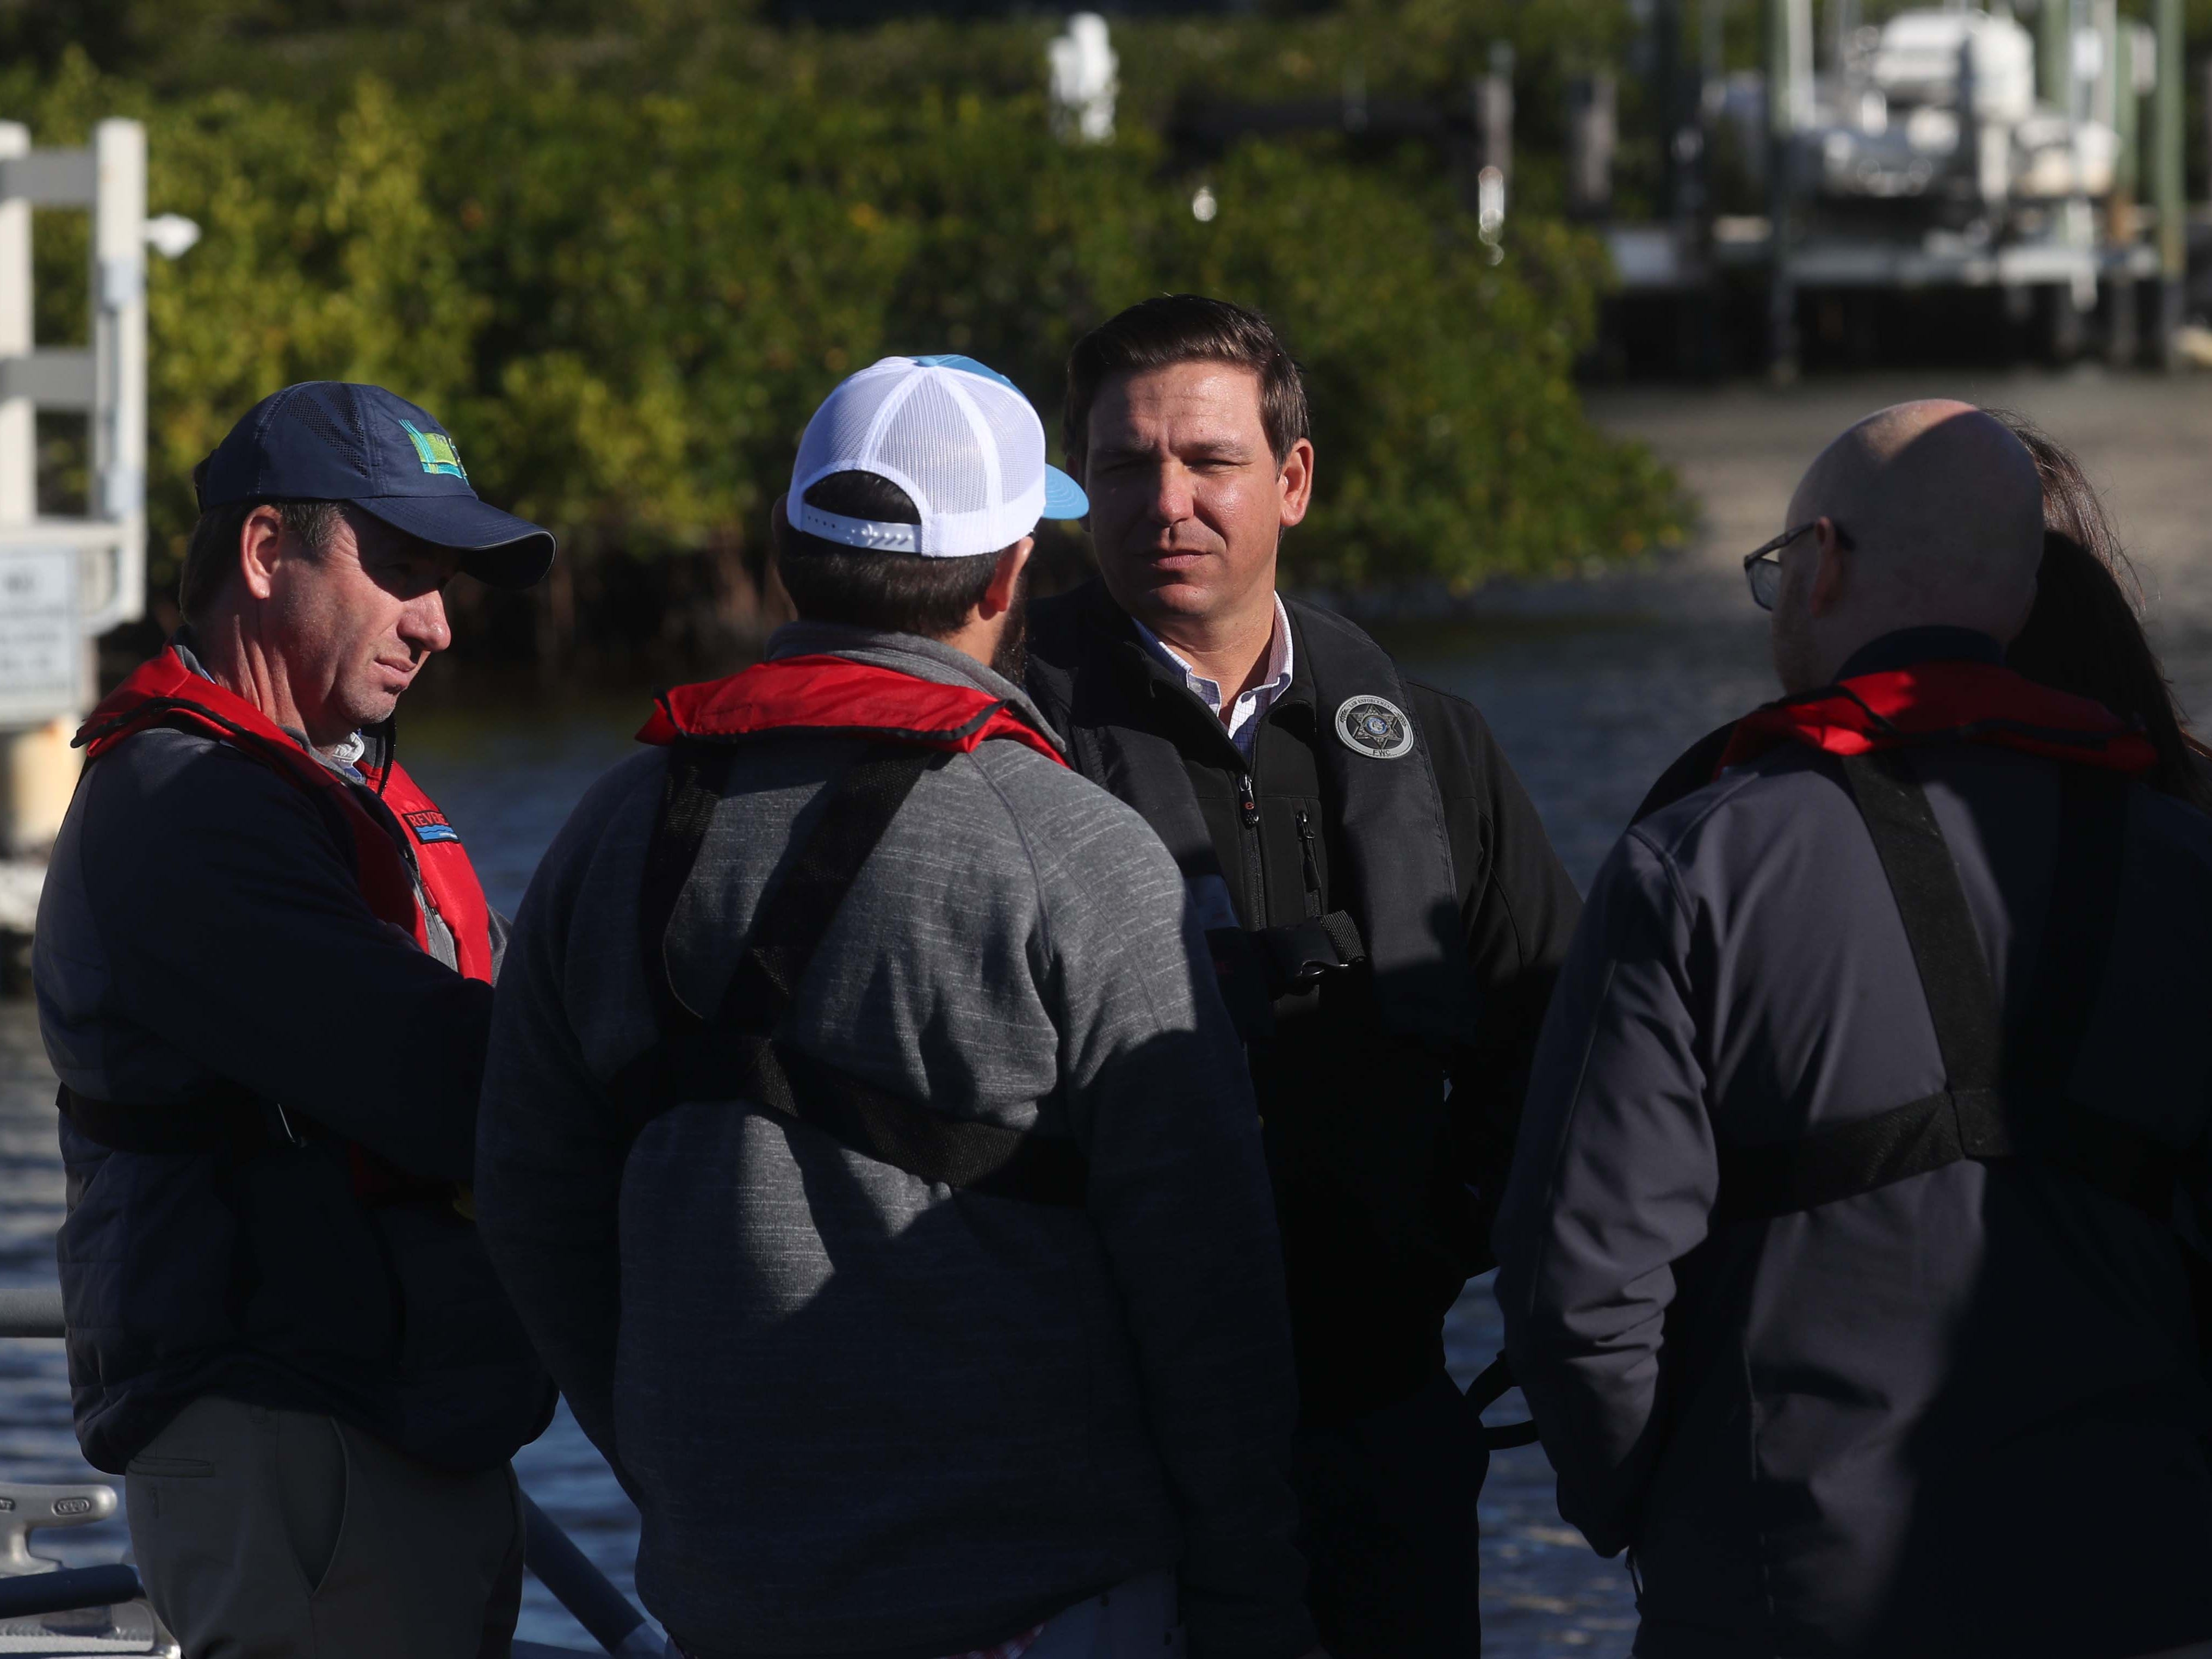 Gov. Ron DeSantis announces a $1 billion increase in water quality spending at FGCU's Vester Marine and Environmental Research Field Station in Bonita Springs on Thursday, Jan. 10, 2018. He took a brief tour of the area's waterways as well.